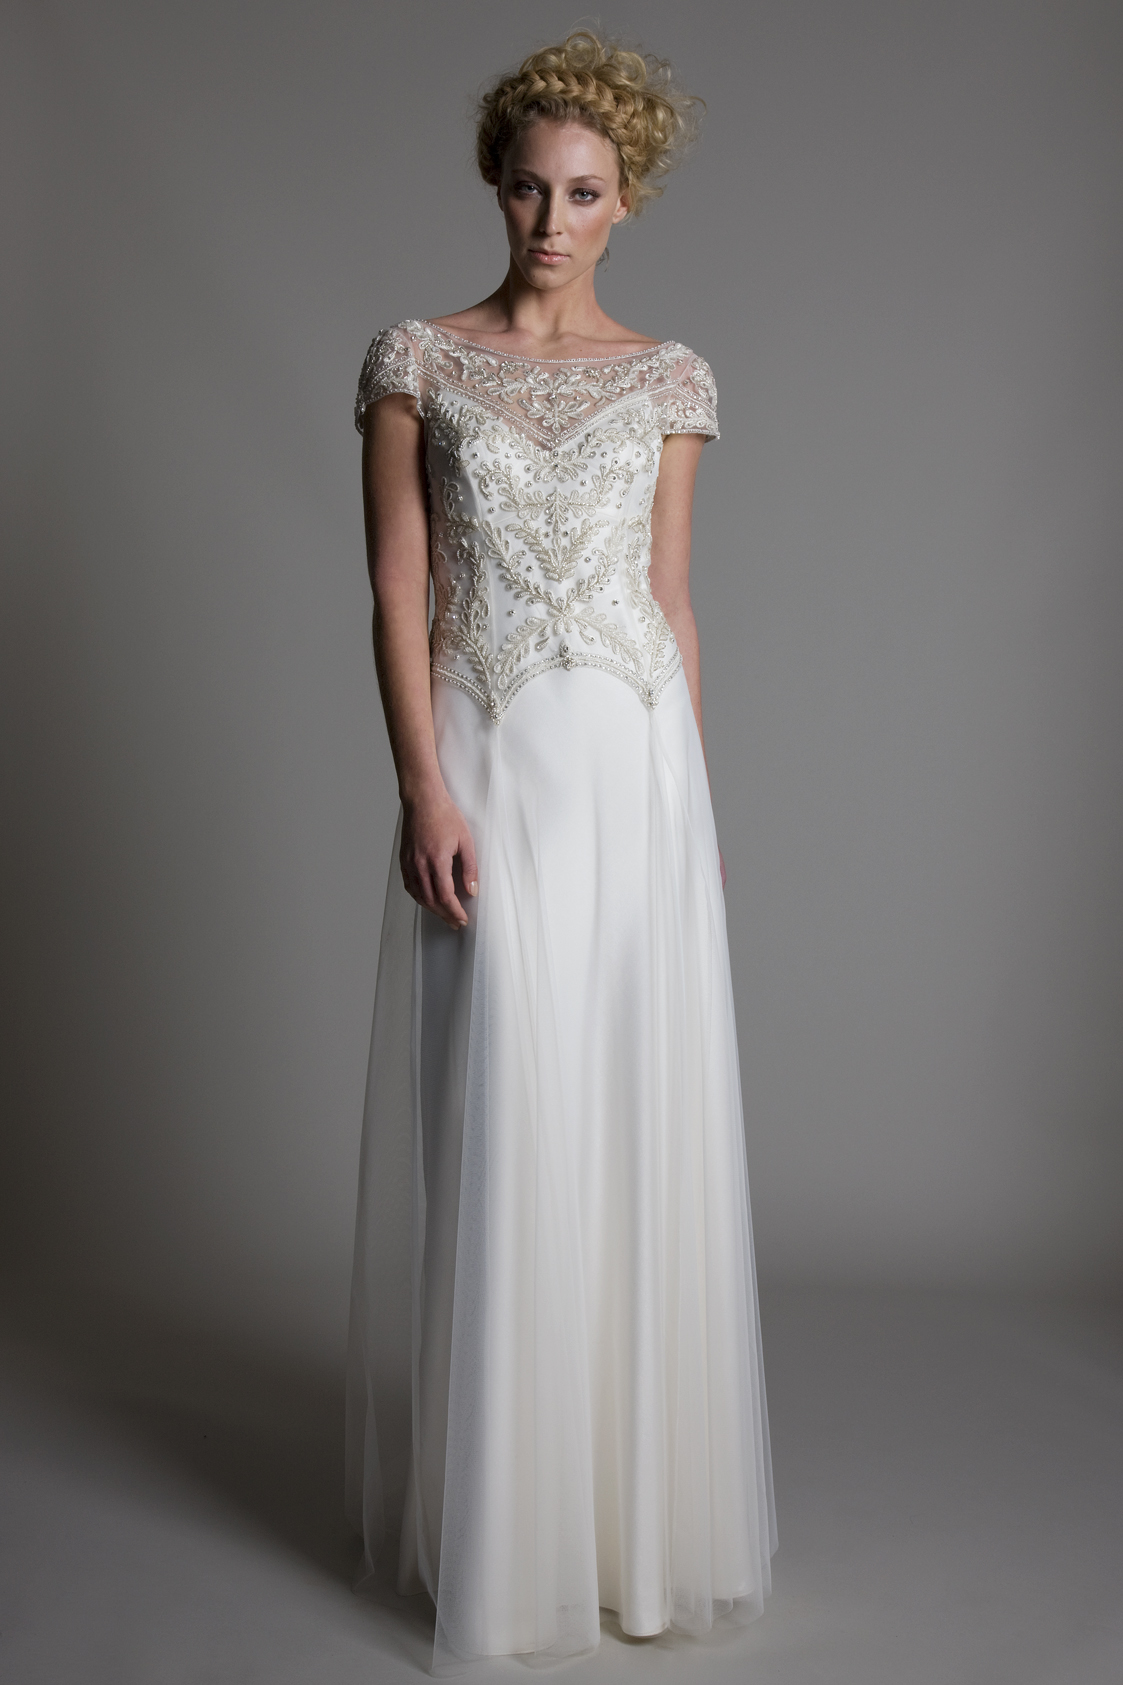 Marianne embellished beaded detailed cap sleeved bodice with tulle skirt on top of a V neck ivory satin slip bridal wedding dress by Halfpenny London